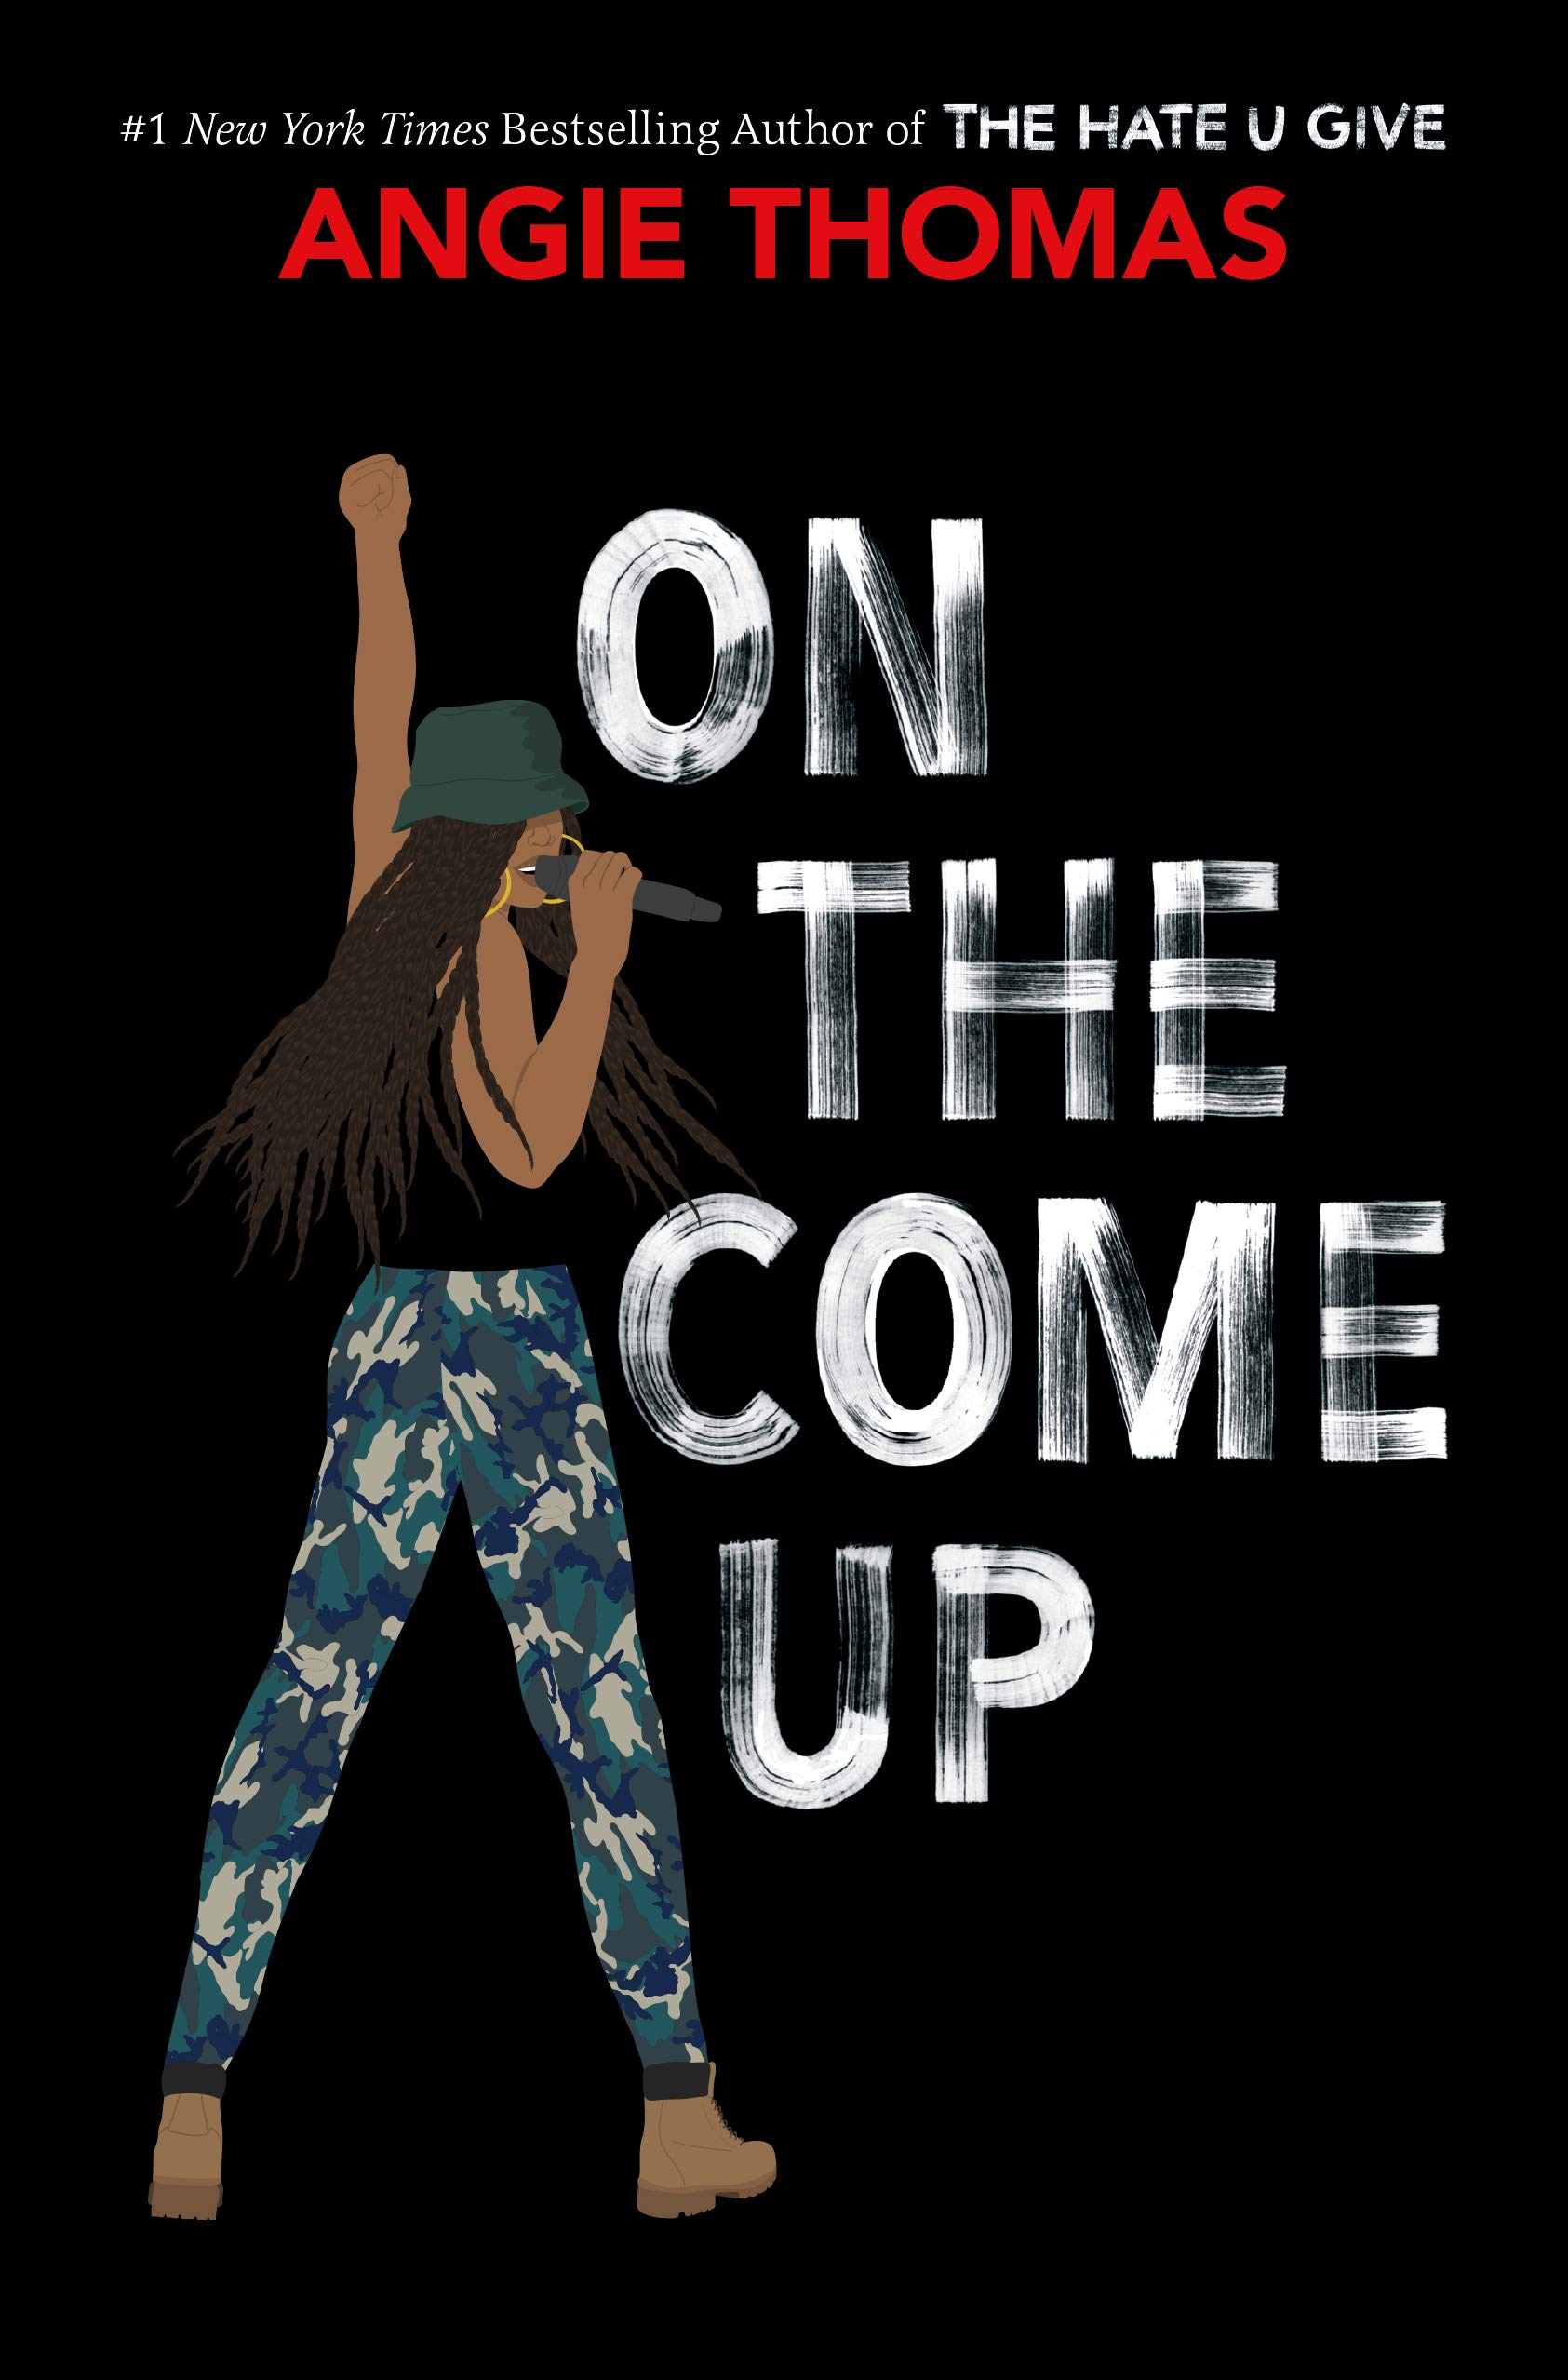 "Written by Angie ThomasIn this new work from the author of The Hate U Give, the daughter of an underground hip-hop legend records the song ""On the Come Up"" to protest racial profiling, but some see it as inciting violence. ""I was engrossed from the first chapter,"" says Katherine, a high-school senior. ""The dialogue is so real, and helps convey a powerful message about prejudice."""